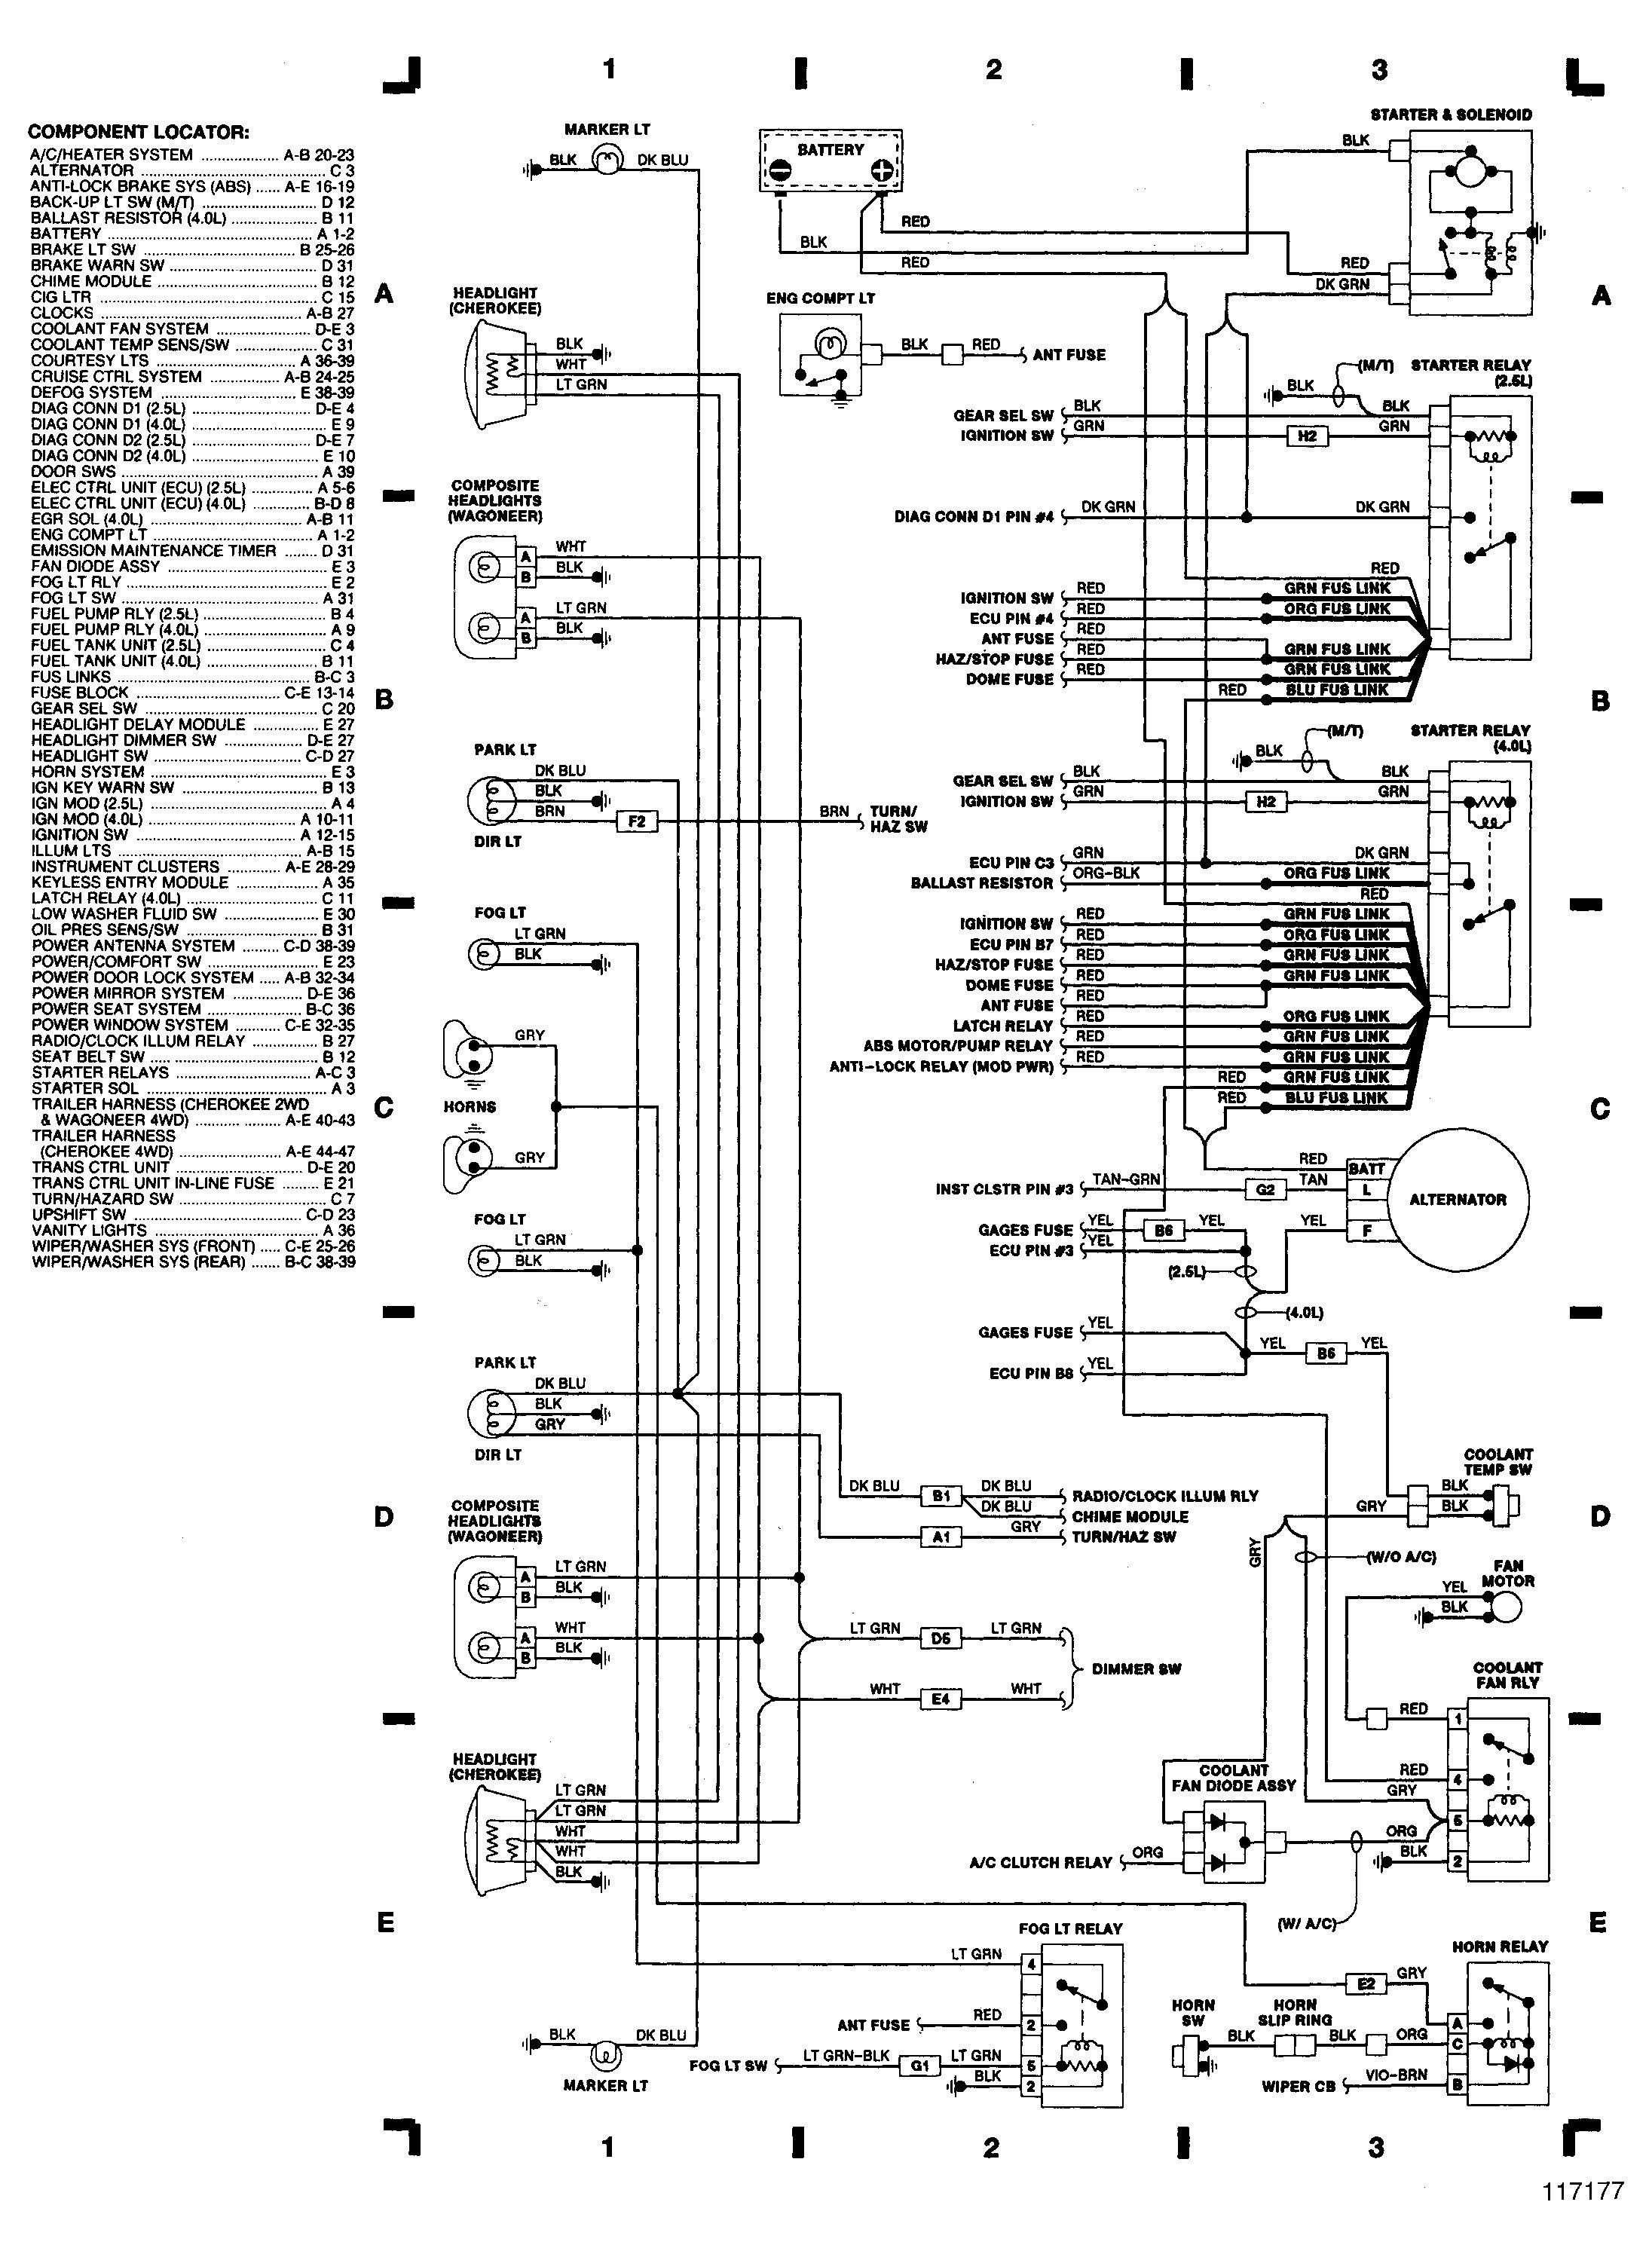 1993 jeep cherokee engine diagram | jeep grand cherokee, jeep cherokee, jeep  pinterest